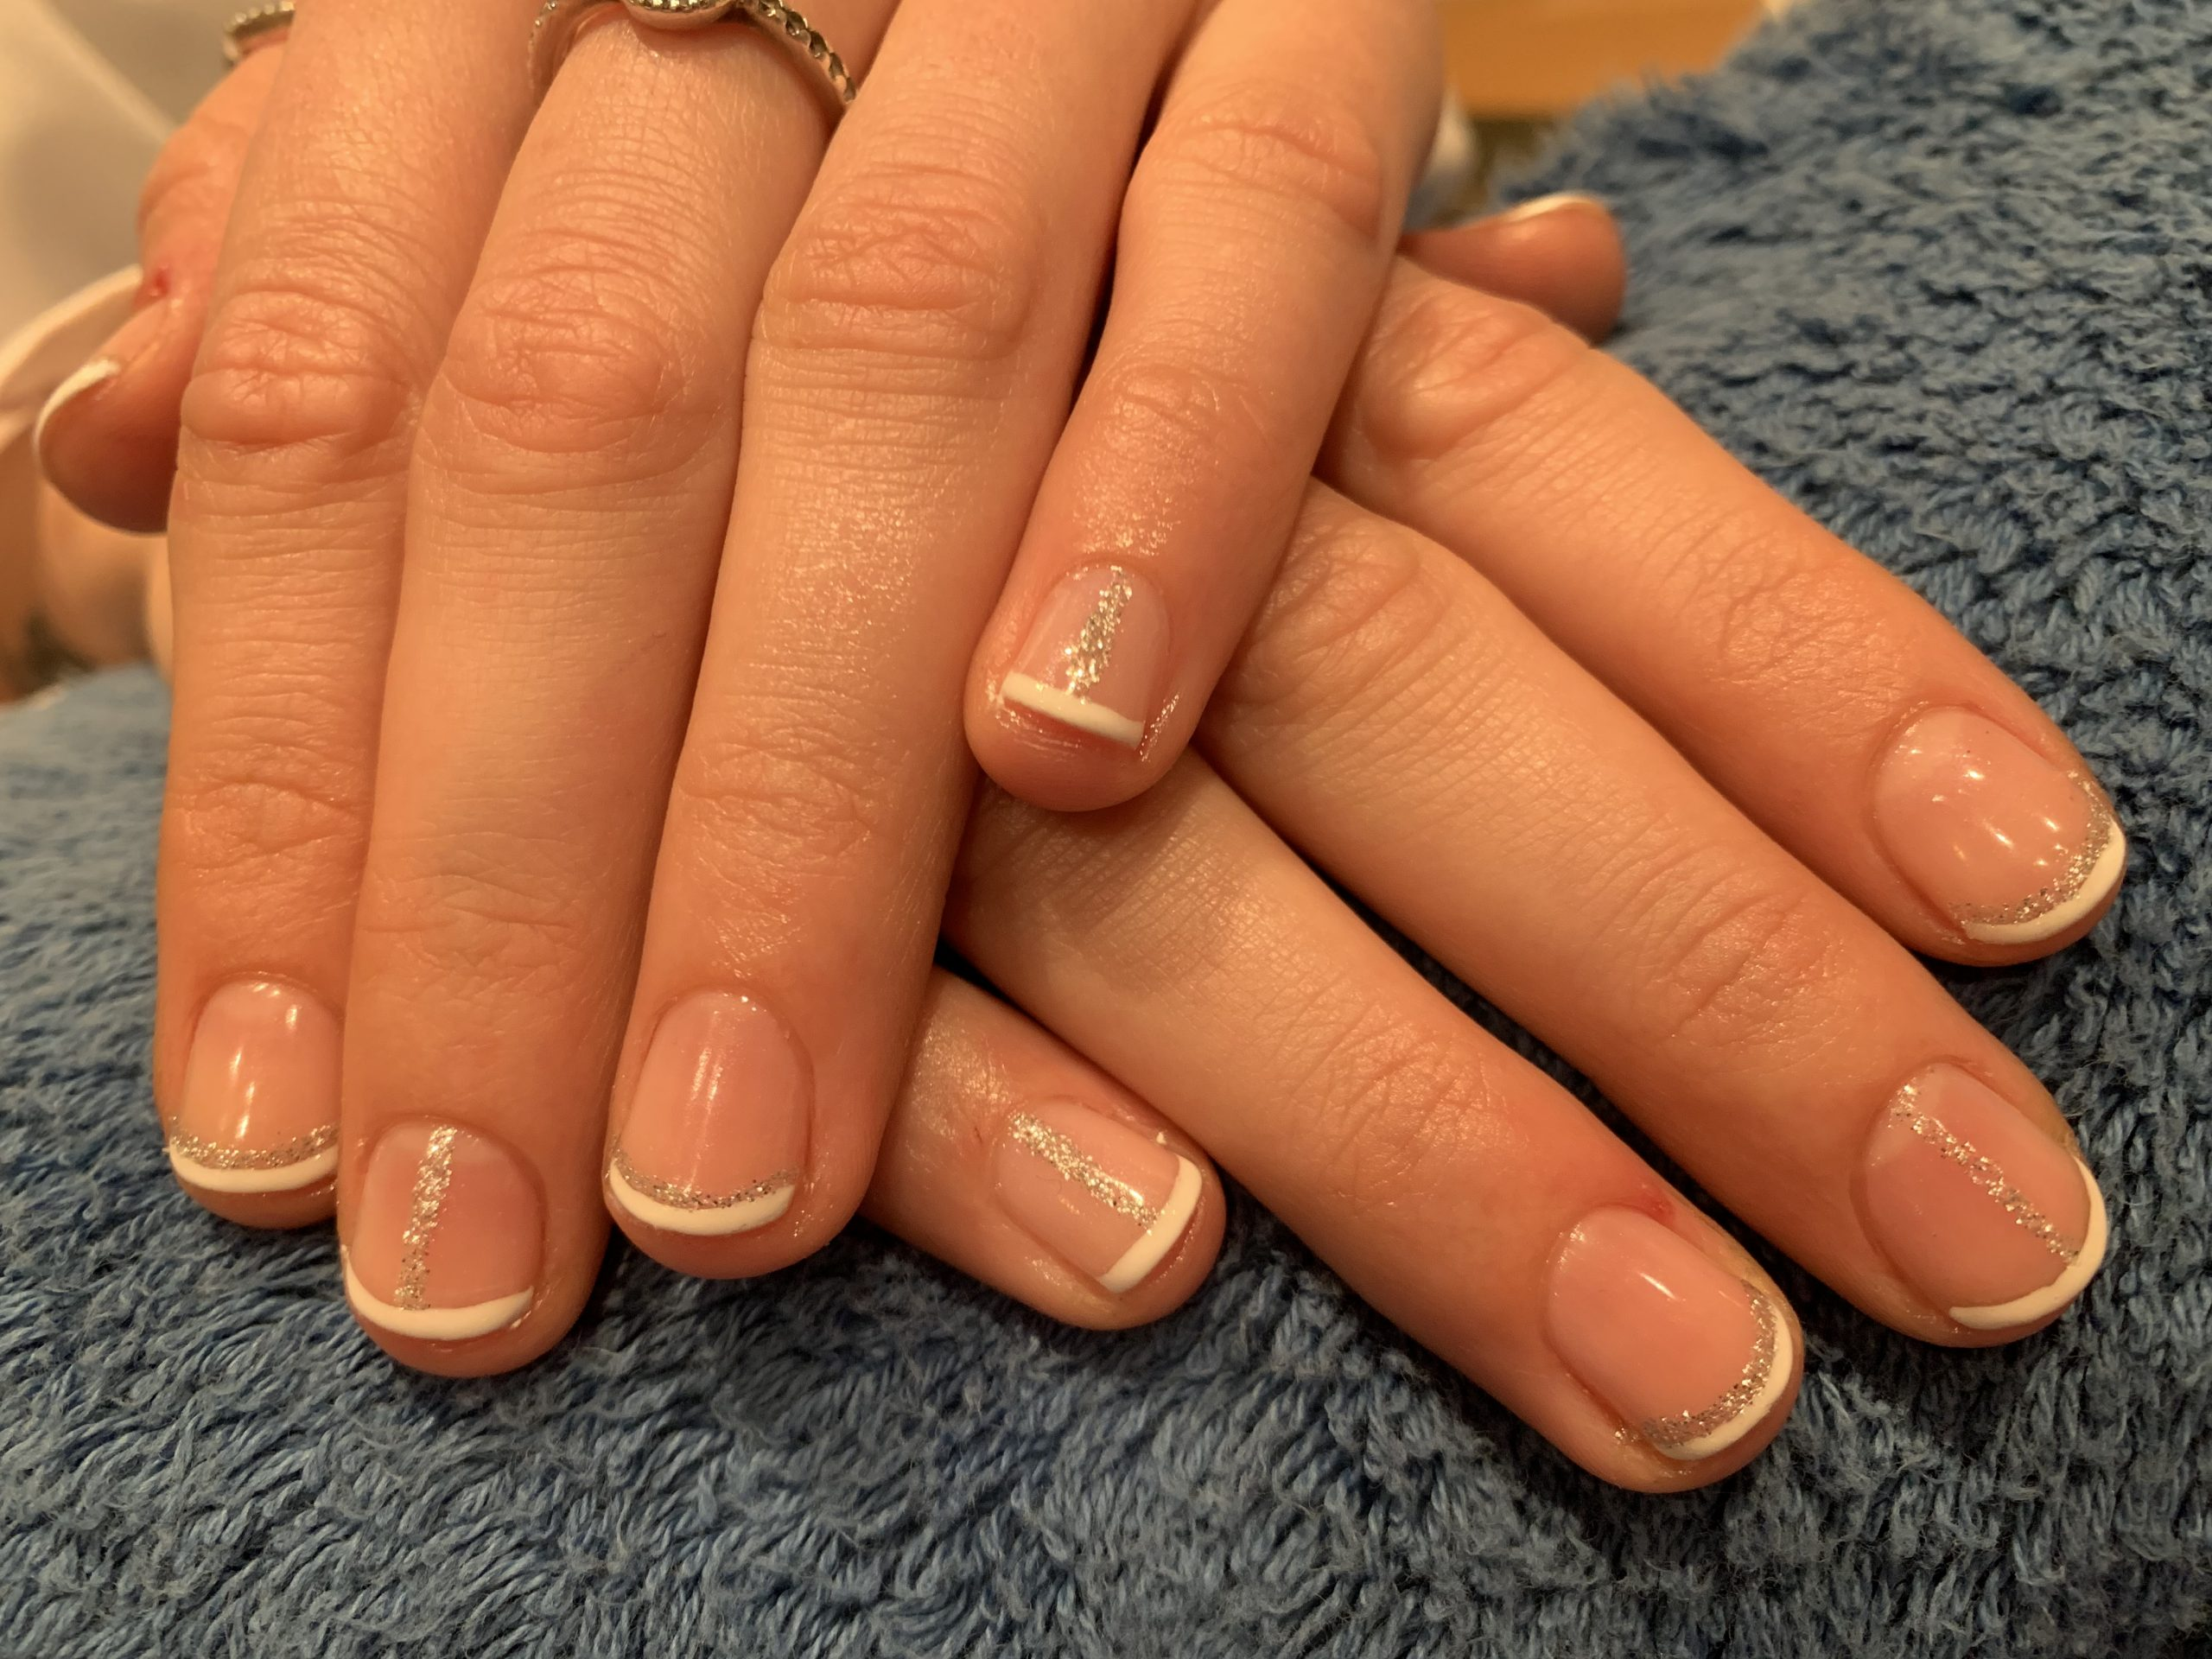 Shellac french polish with glitter detail